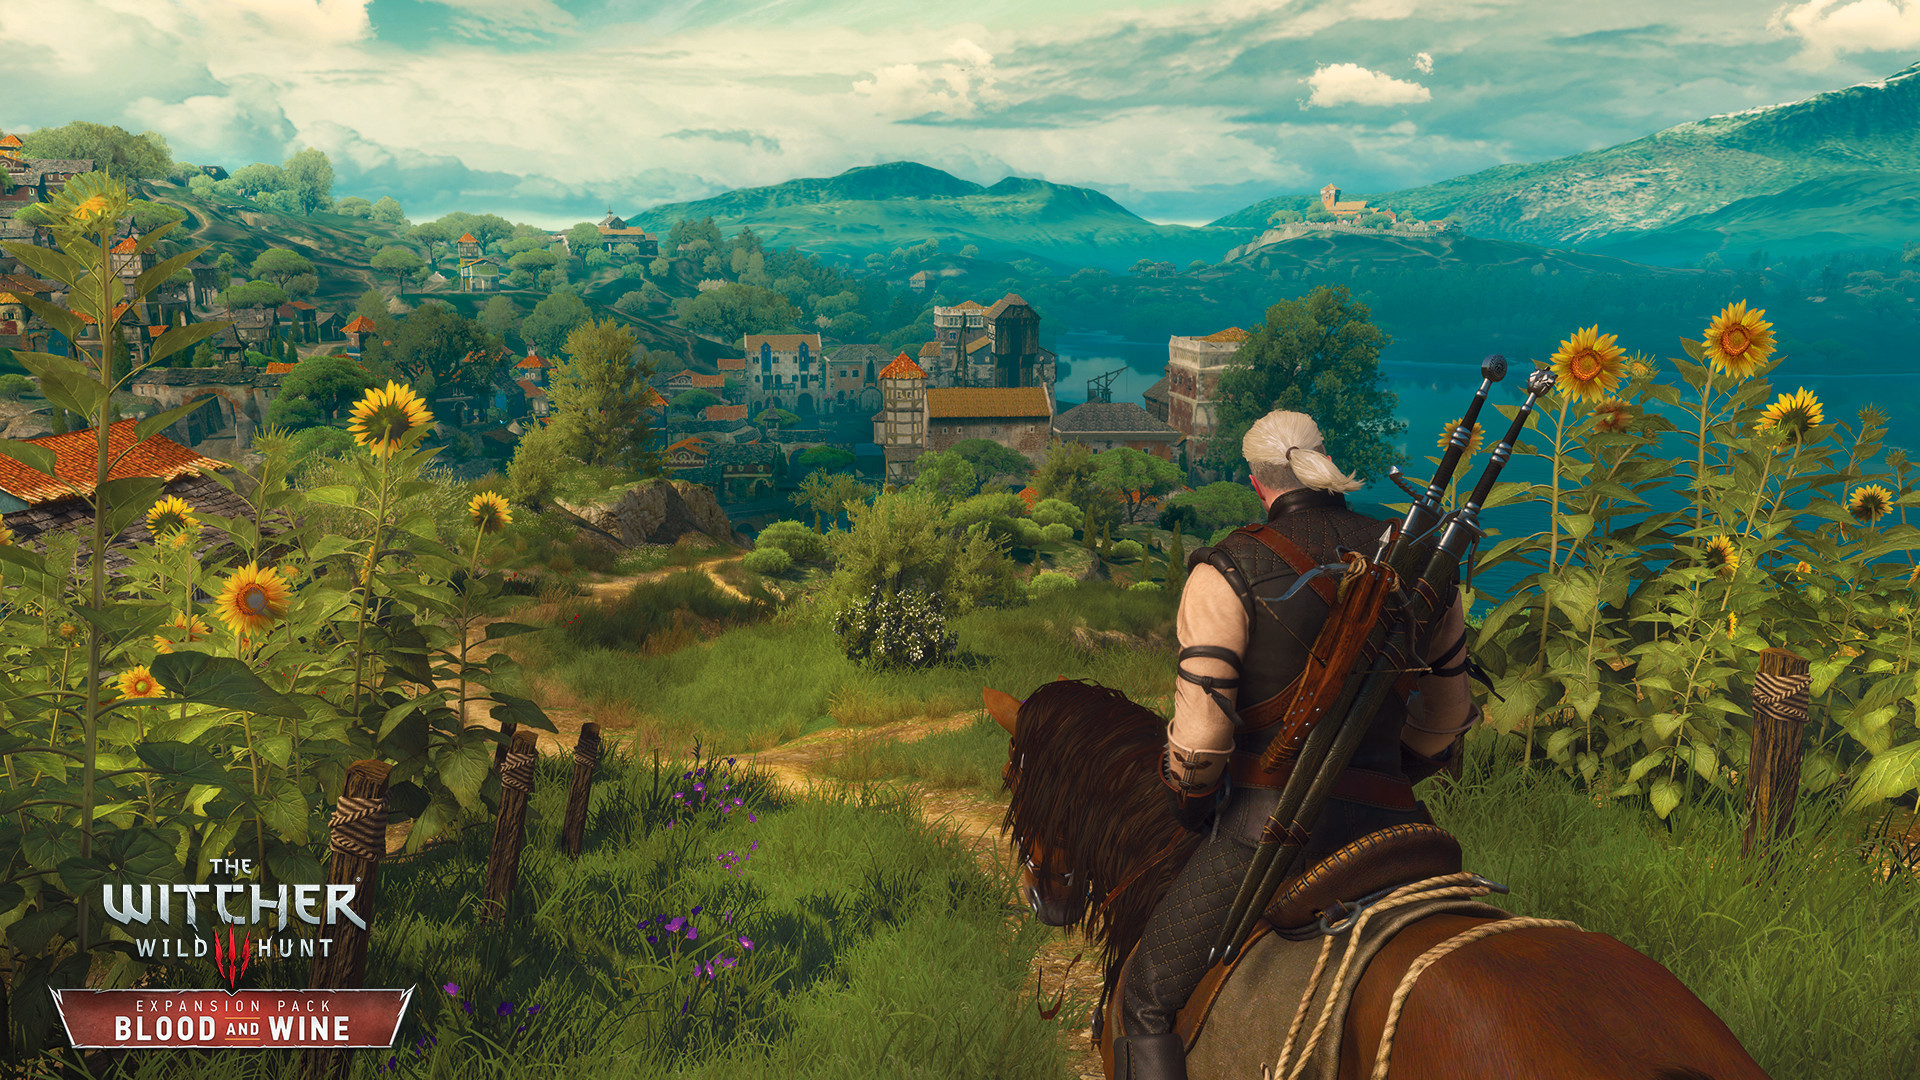 The Witcher 3: Wild Hunt - Blood and Wine Soundtrack screenshot